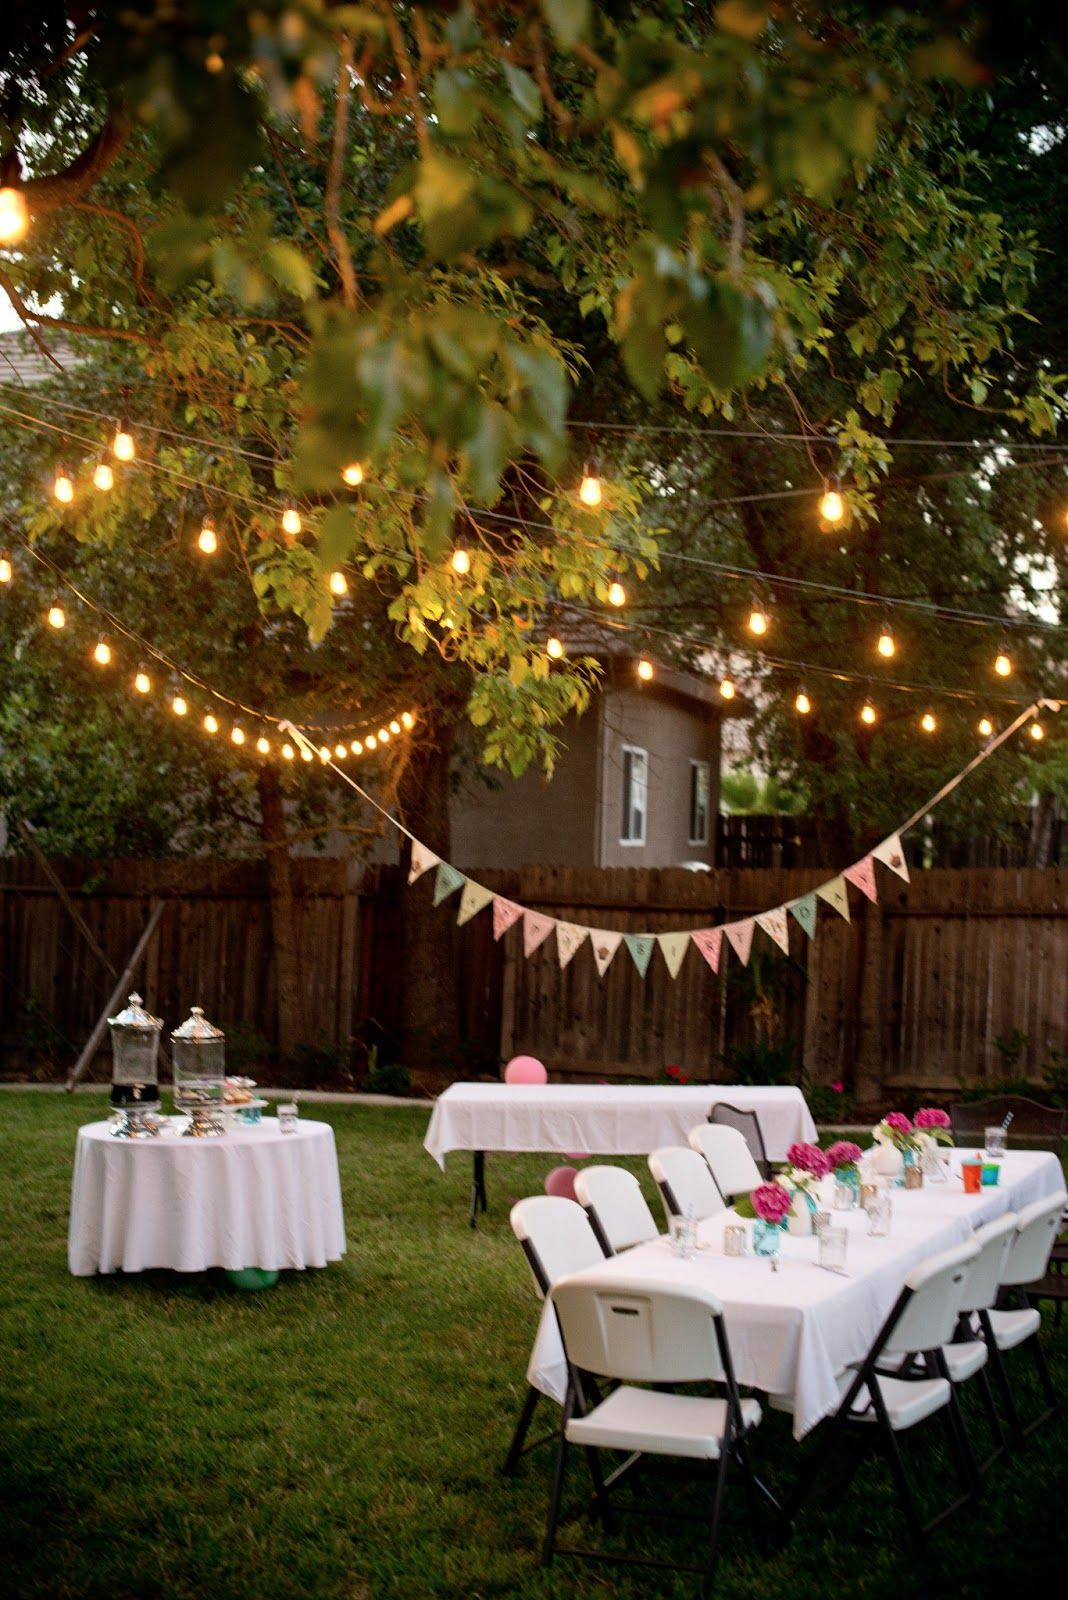 Backyard Birthday Fun--Pink Hydrangeas + Polka Dot Napkins ... on ideas for backyard decorations, ideas for wedding lighting, ideas for backyard landscaping,